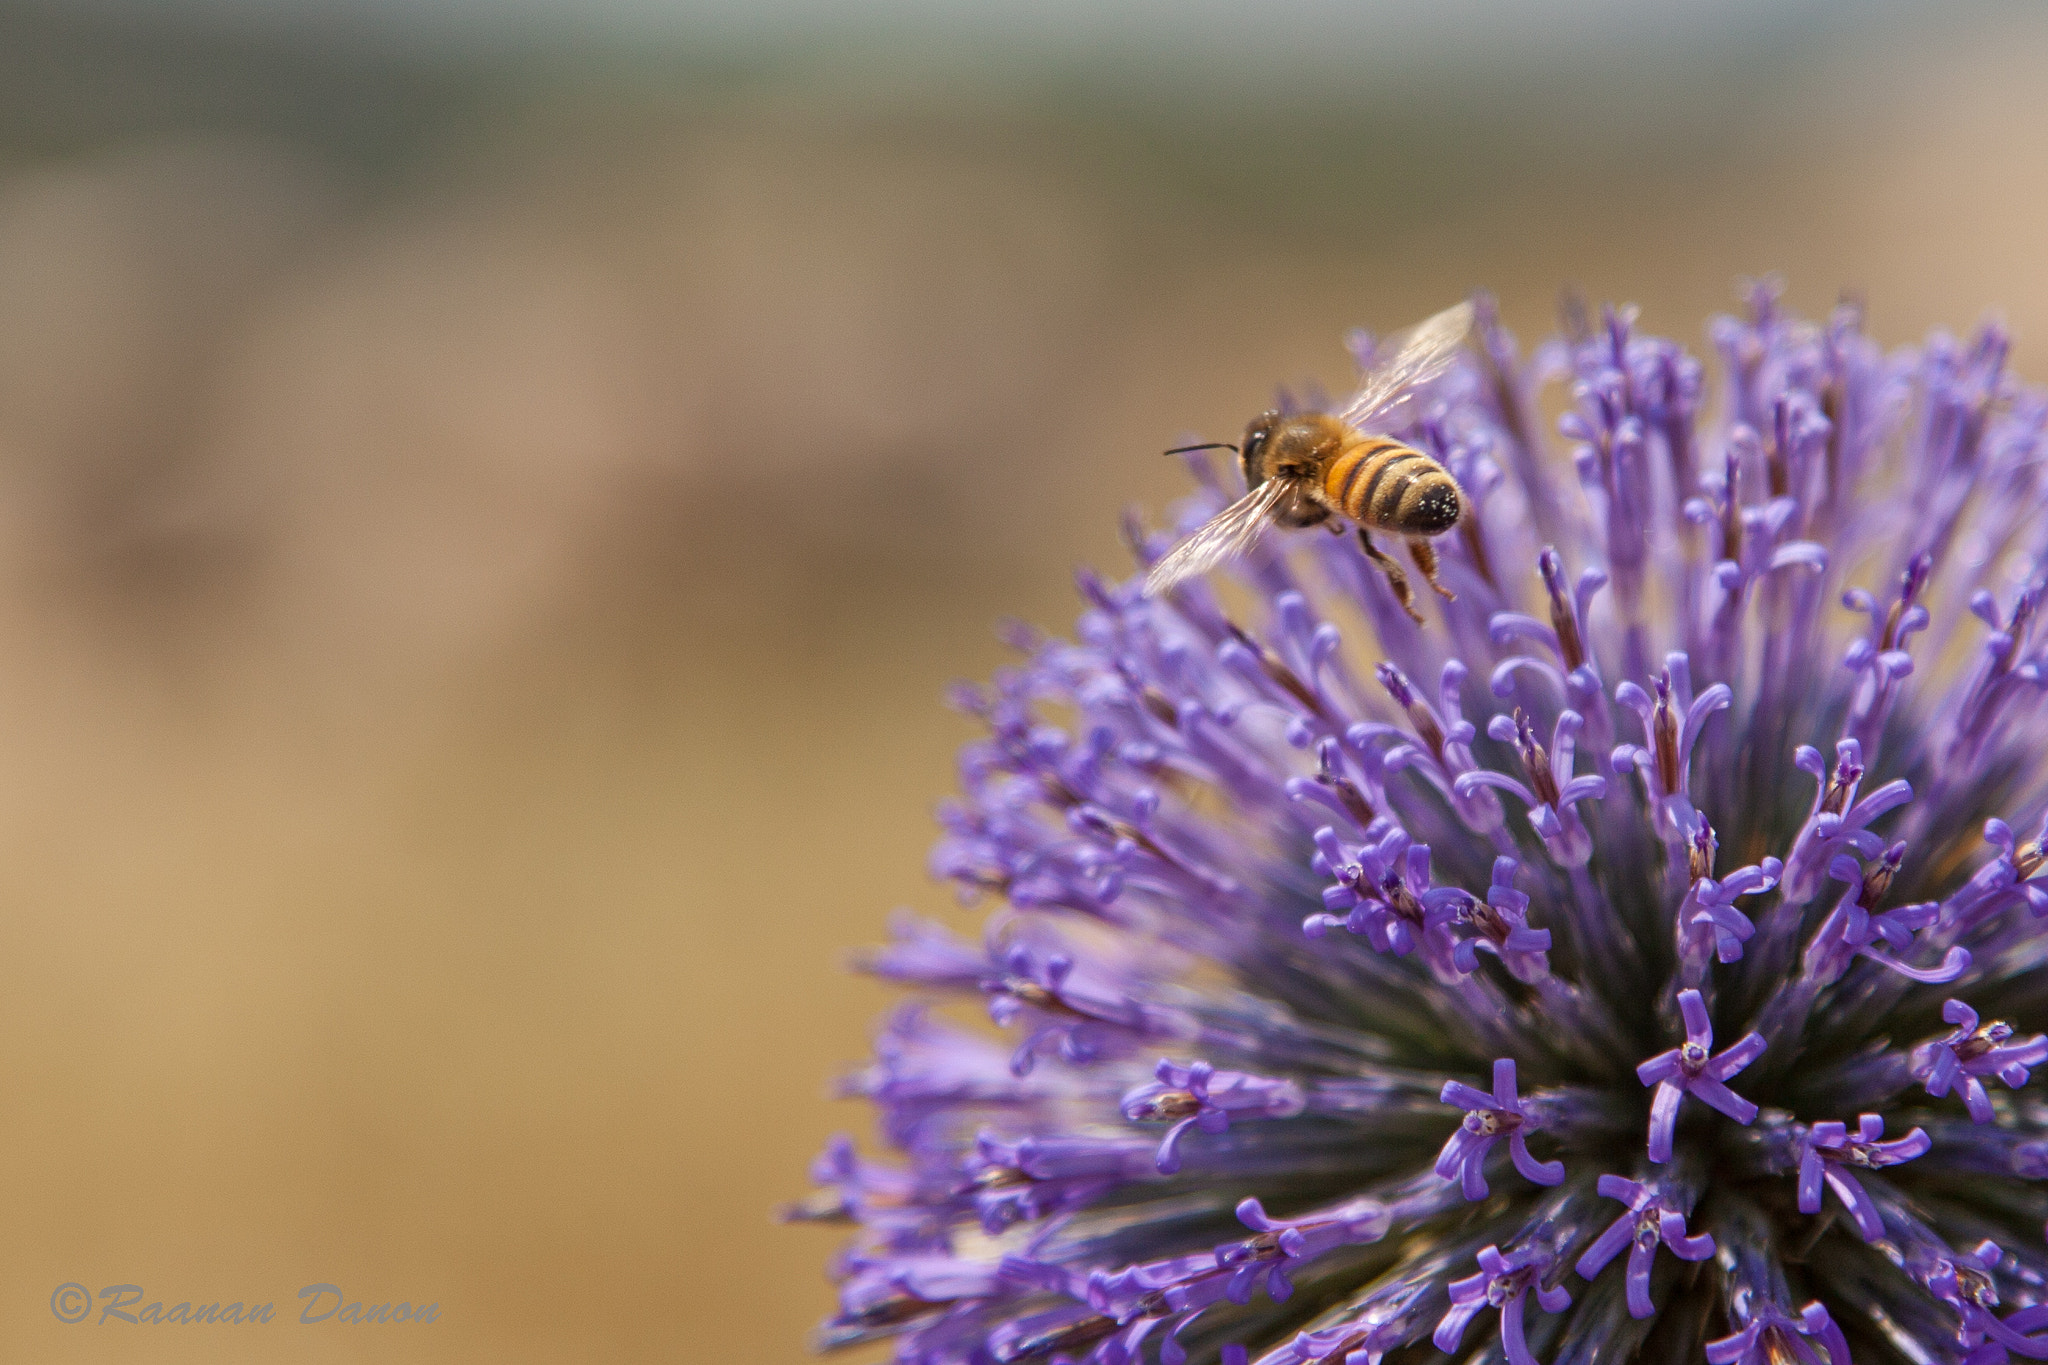 Photograph Bee at Work by Raanan Danon on 500px